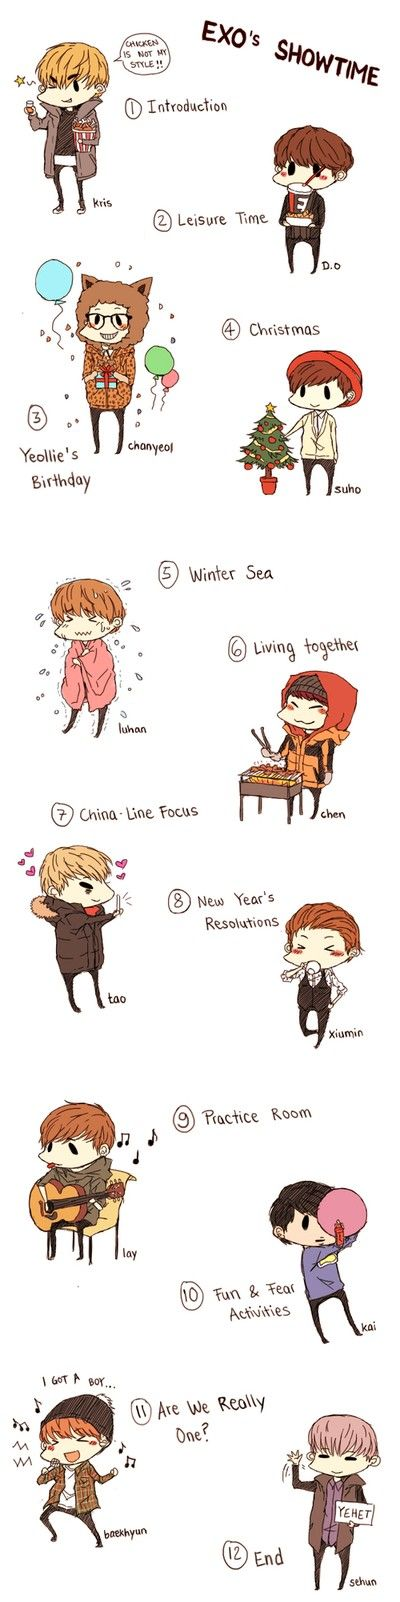 AWWWWWWE fan art of EXO'S SHOWTIME!! <3 EXO'S SHOWTIME!! Best variety show for EXO-Ls like me :D